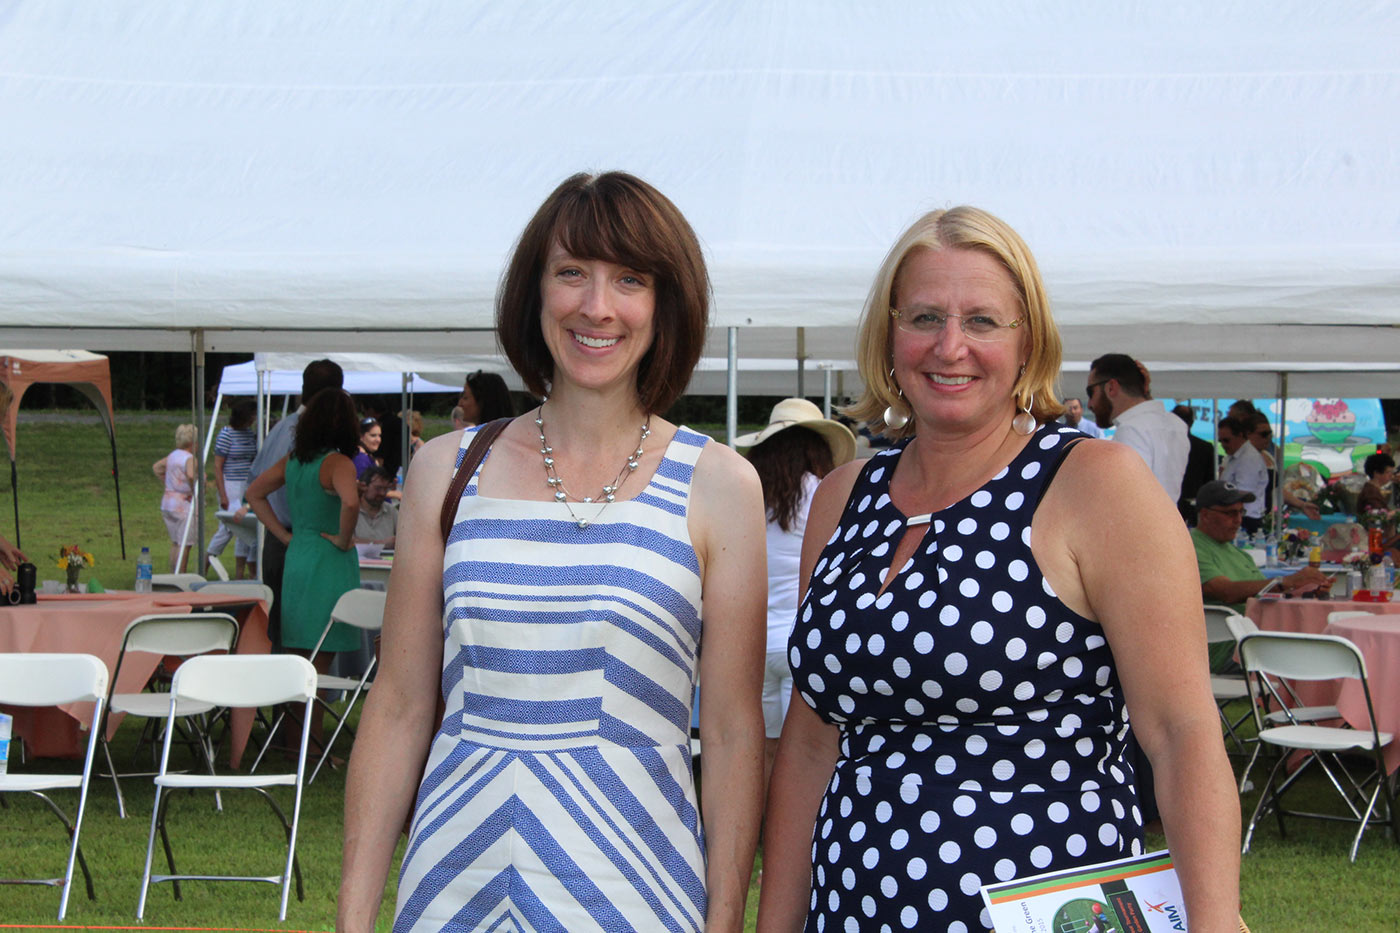 Two women smiling at camera at AIM Services Croquet on the Green event